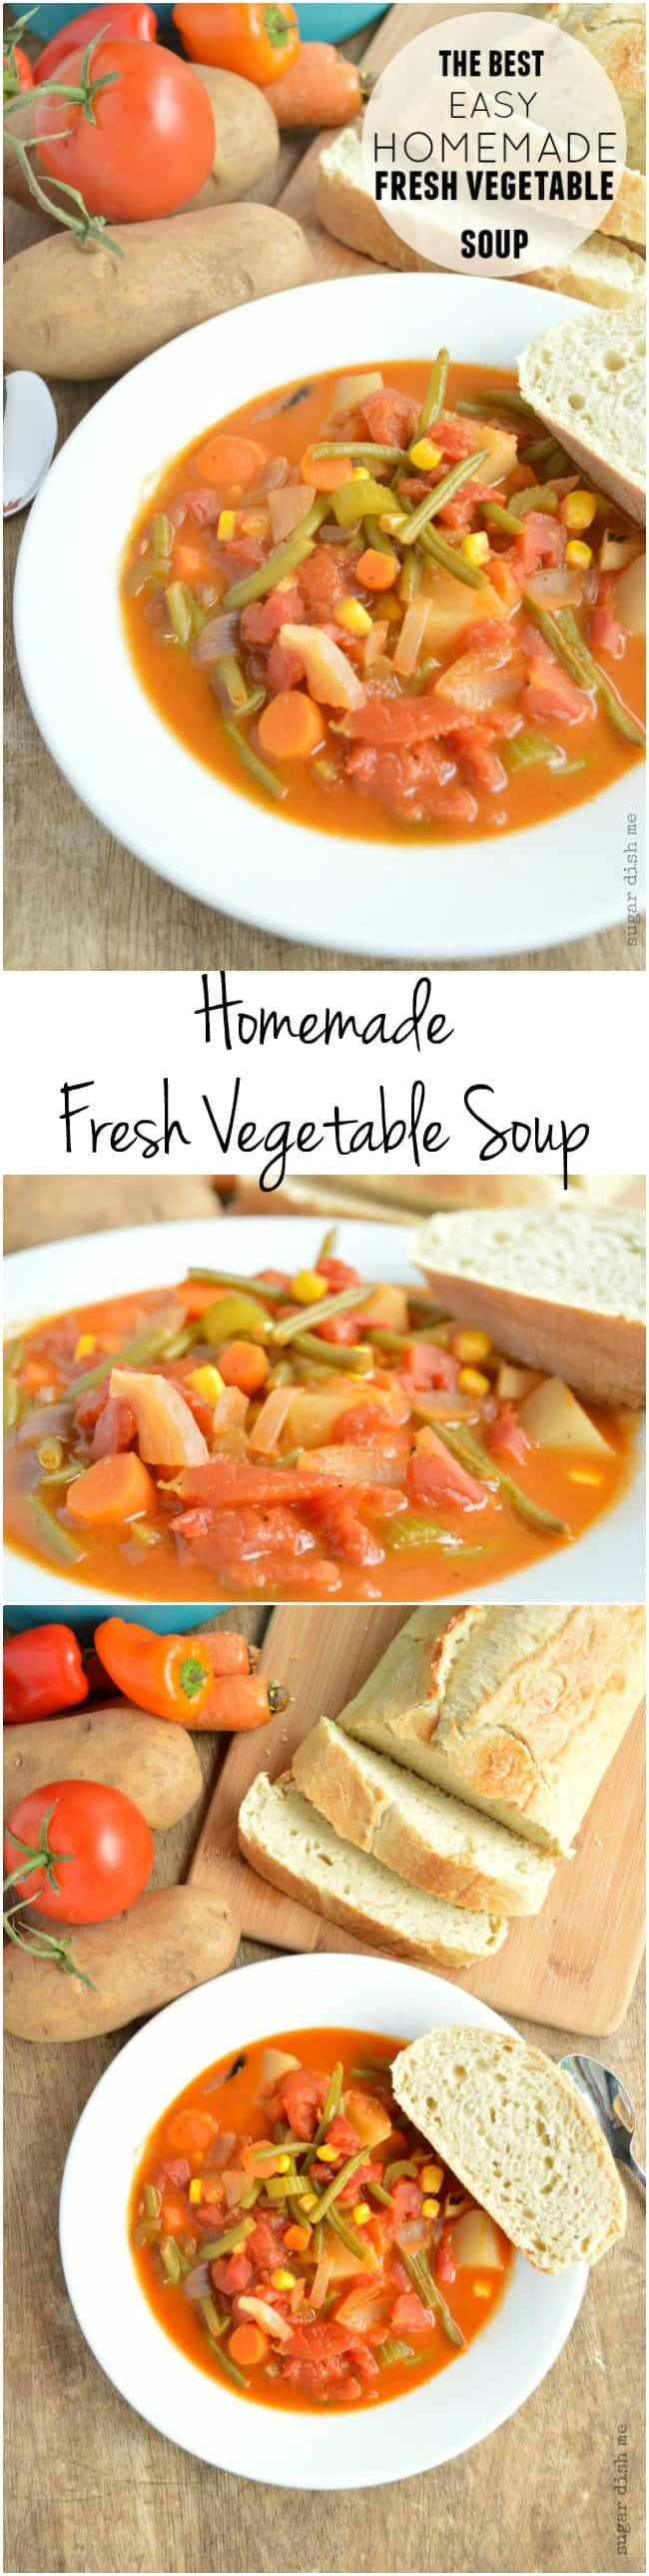 If Minestrone Is Your Thing It Is So My Thing You Should Definitely Try This Recipe